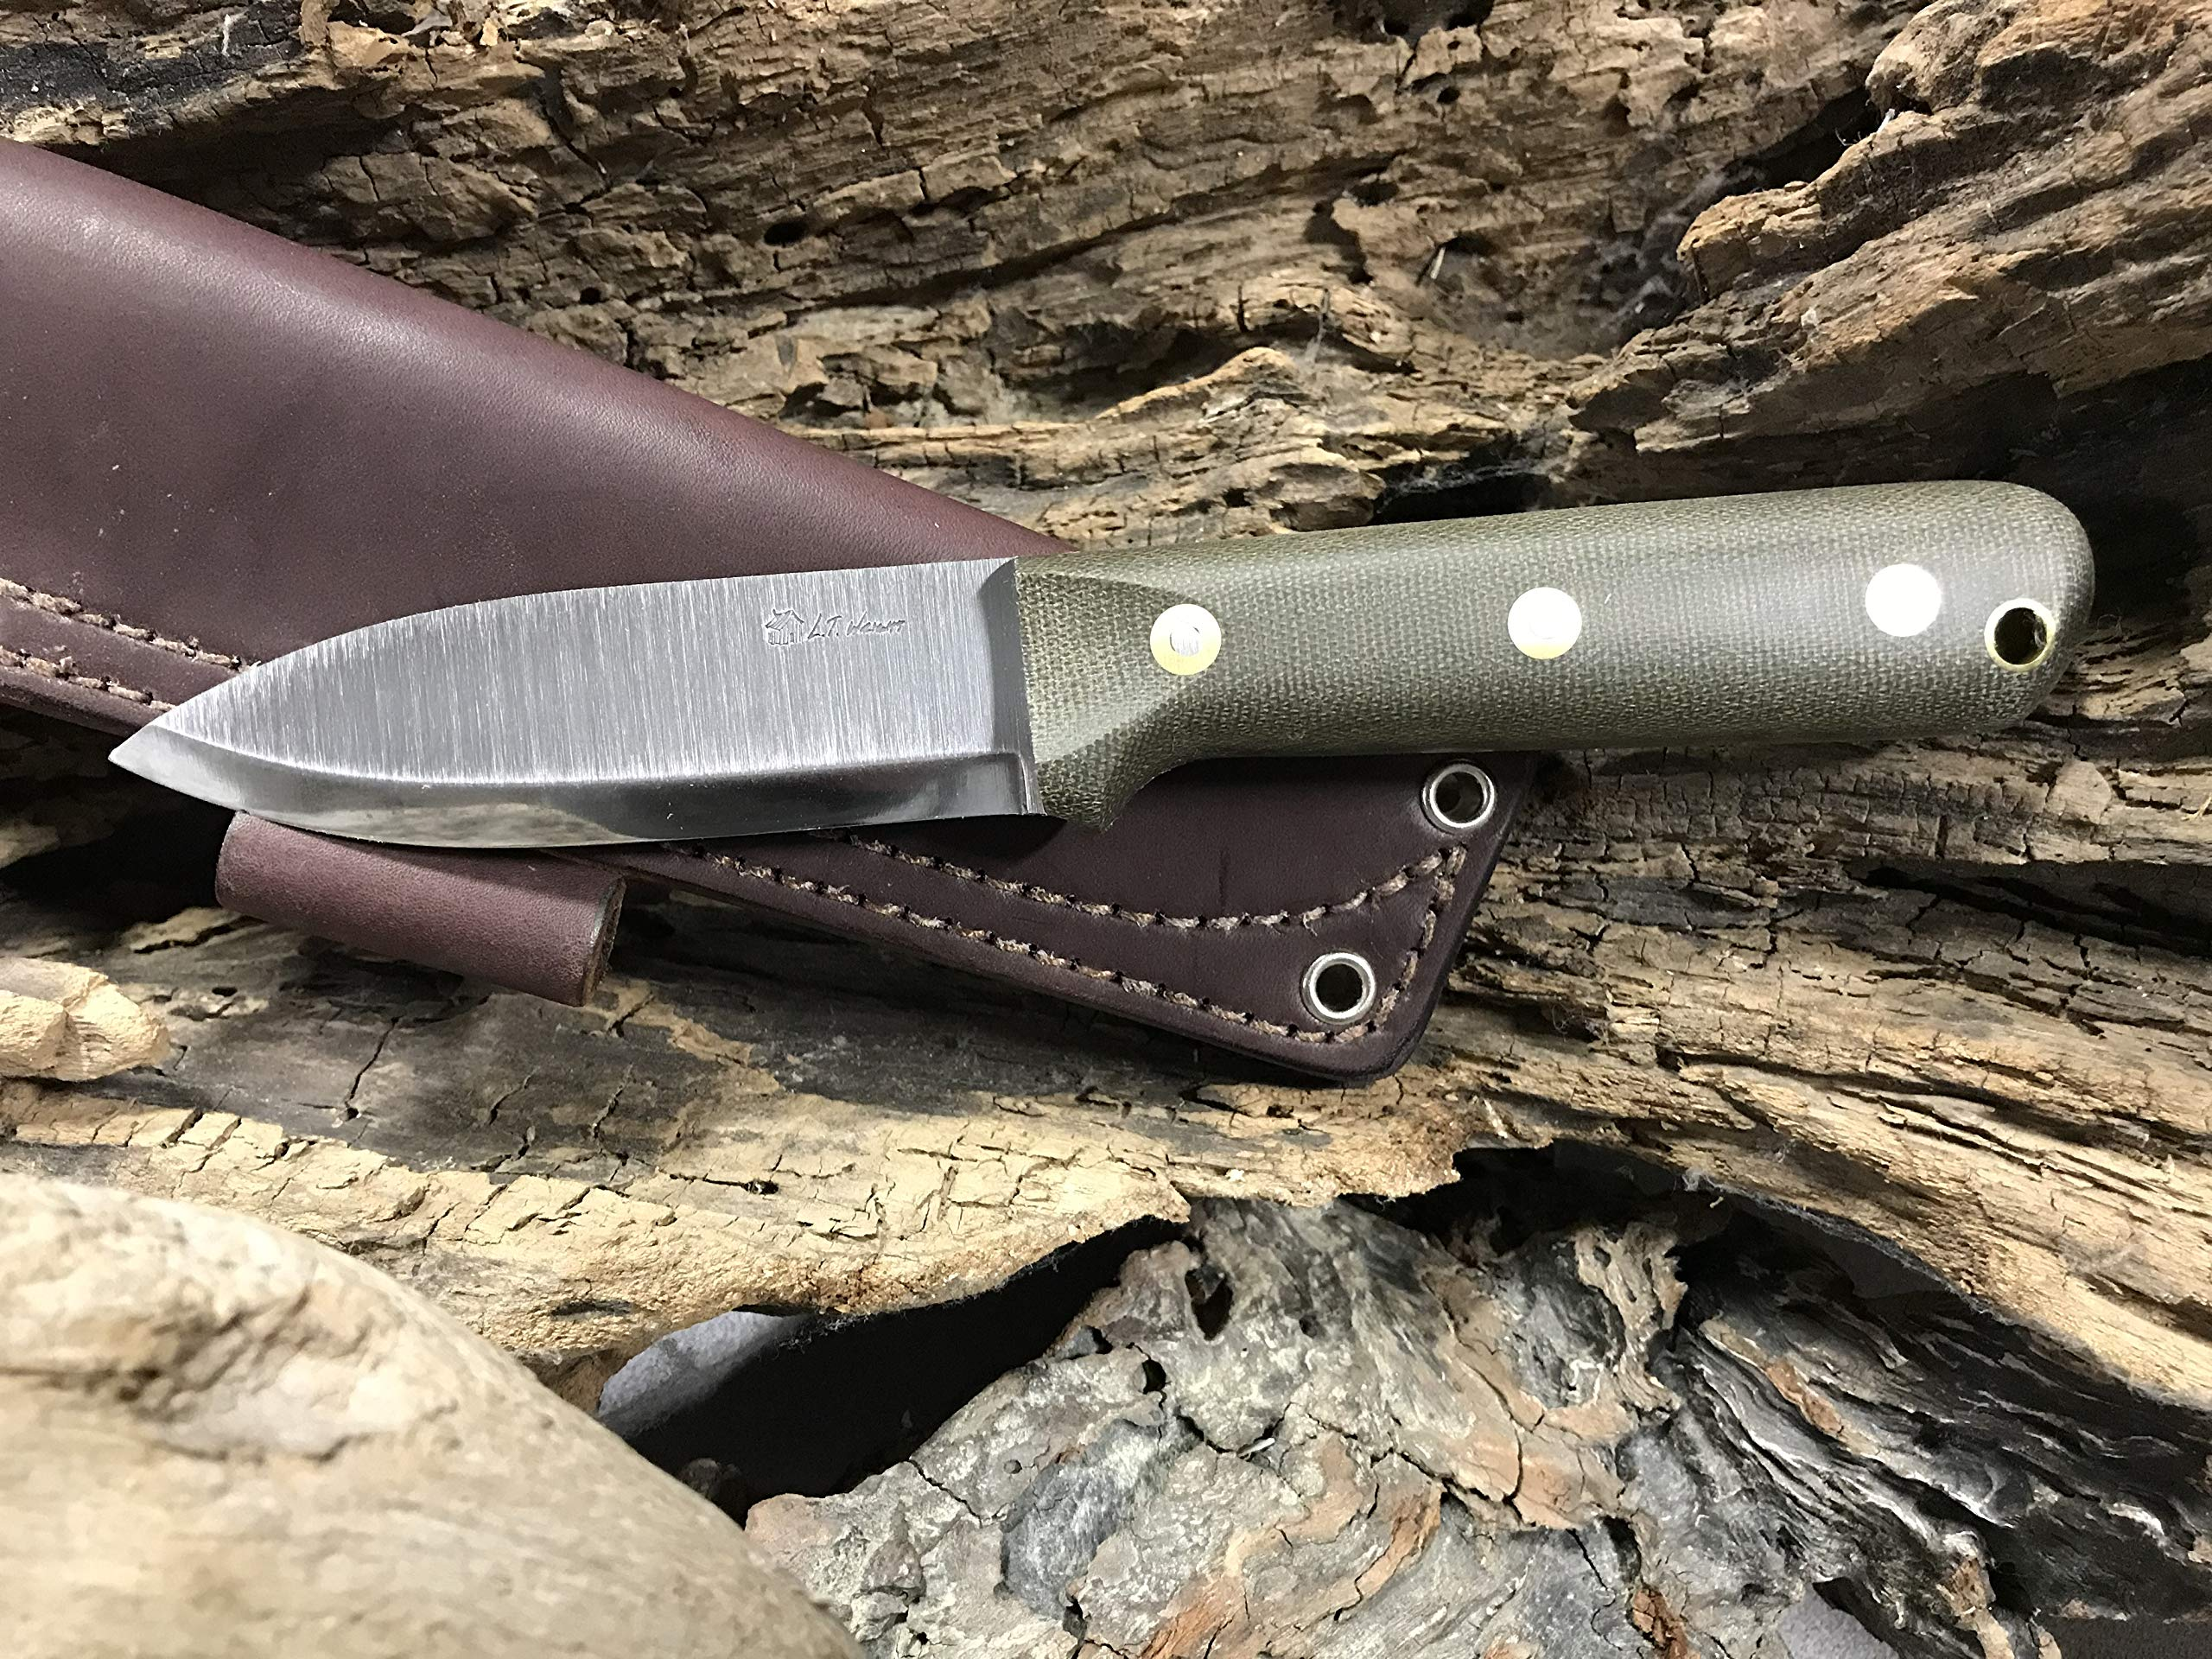 L.T. Wright Handcrafted Knives Genesis w/Scandi Grind, A2 Steel (Green) by L.T. Wright Handcrafted Knives (Image #6)